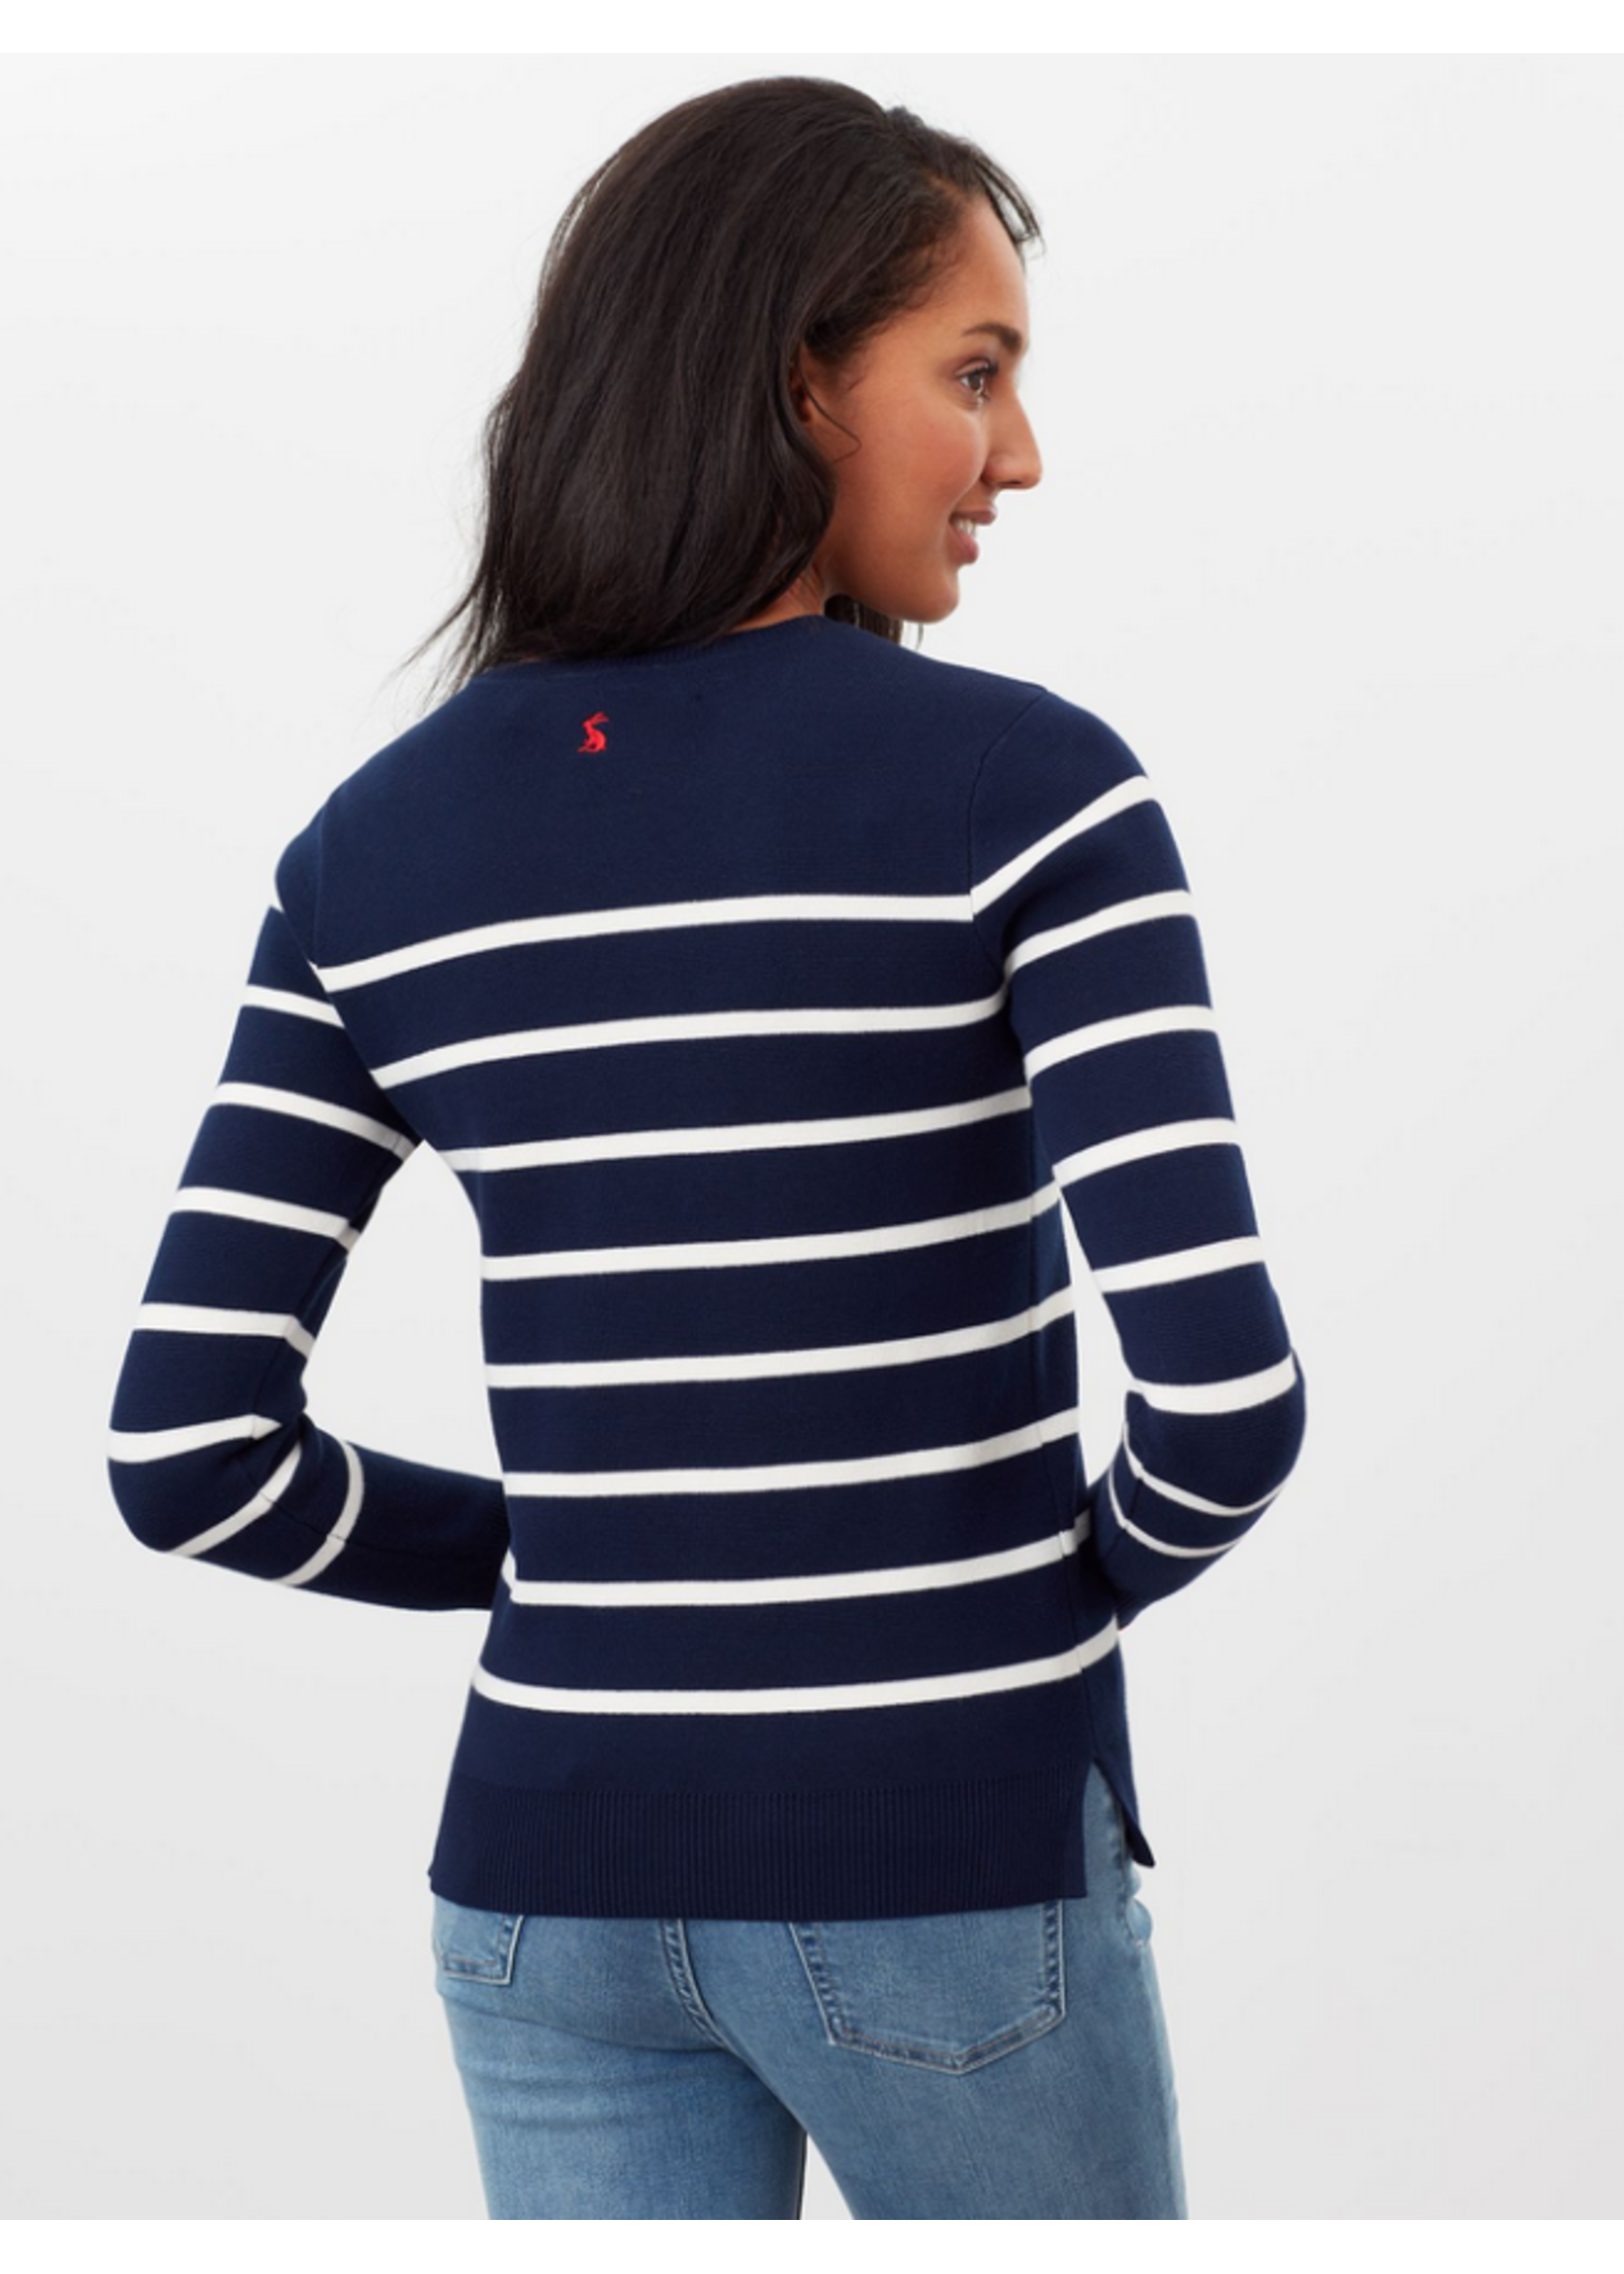 Joules Portlow Jumper with Button Shoulder